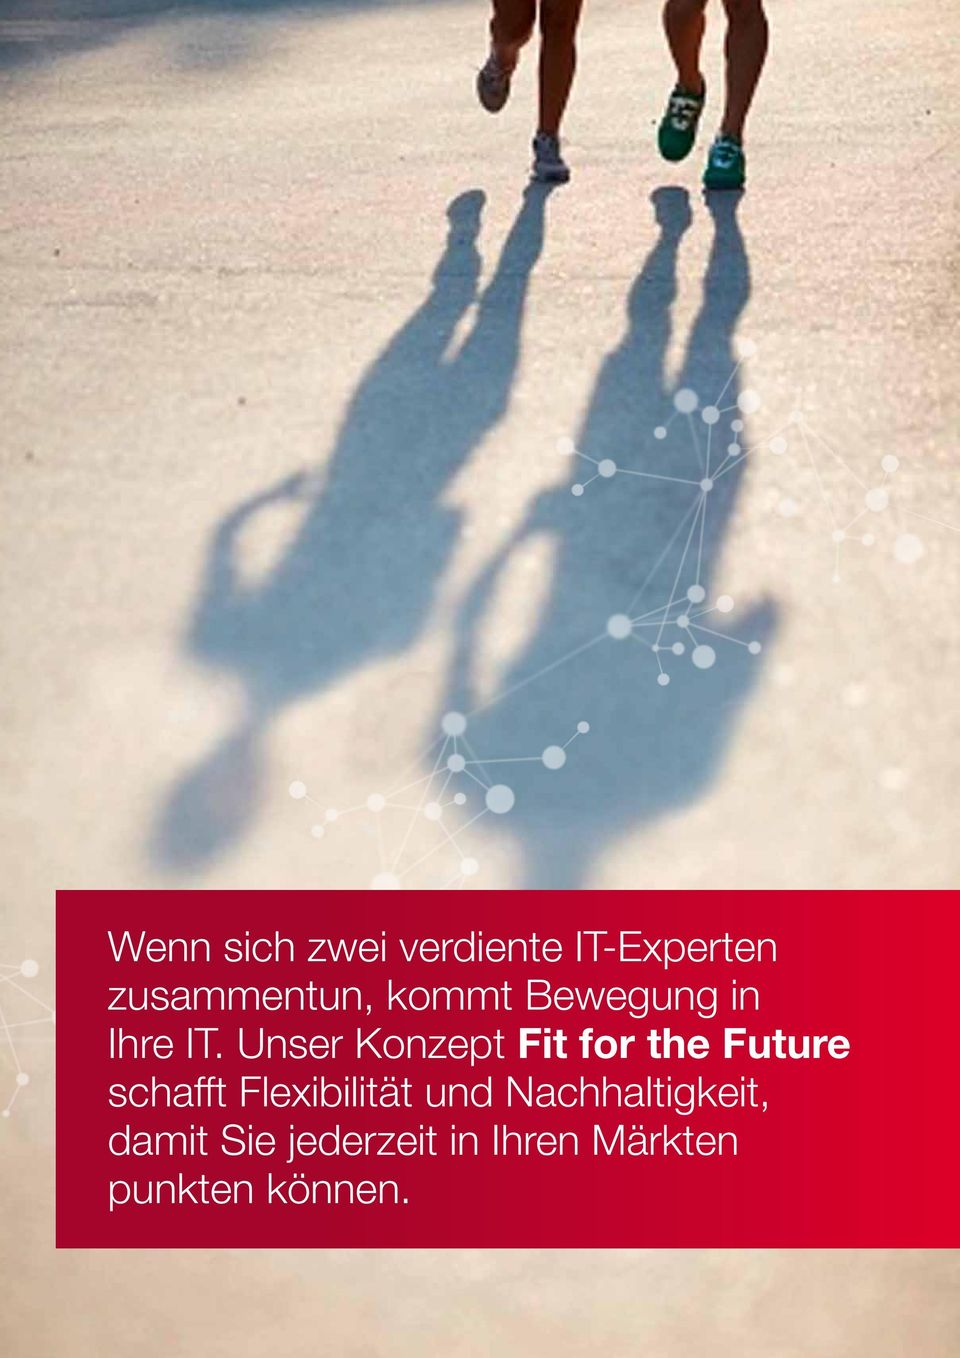 Unser Konzept Fit for the Future schafft